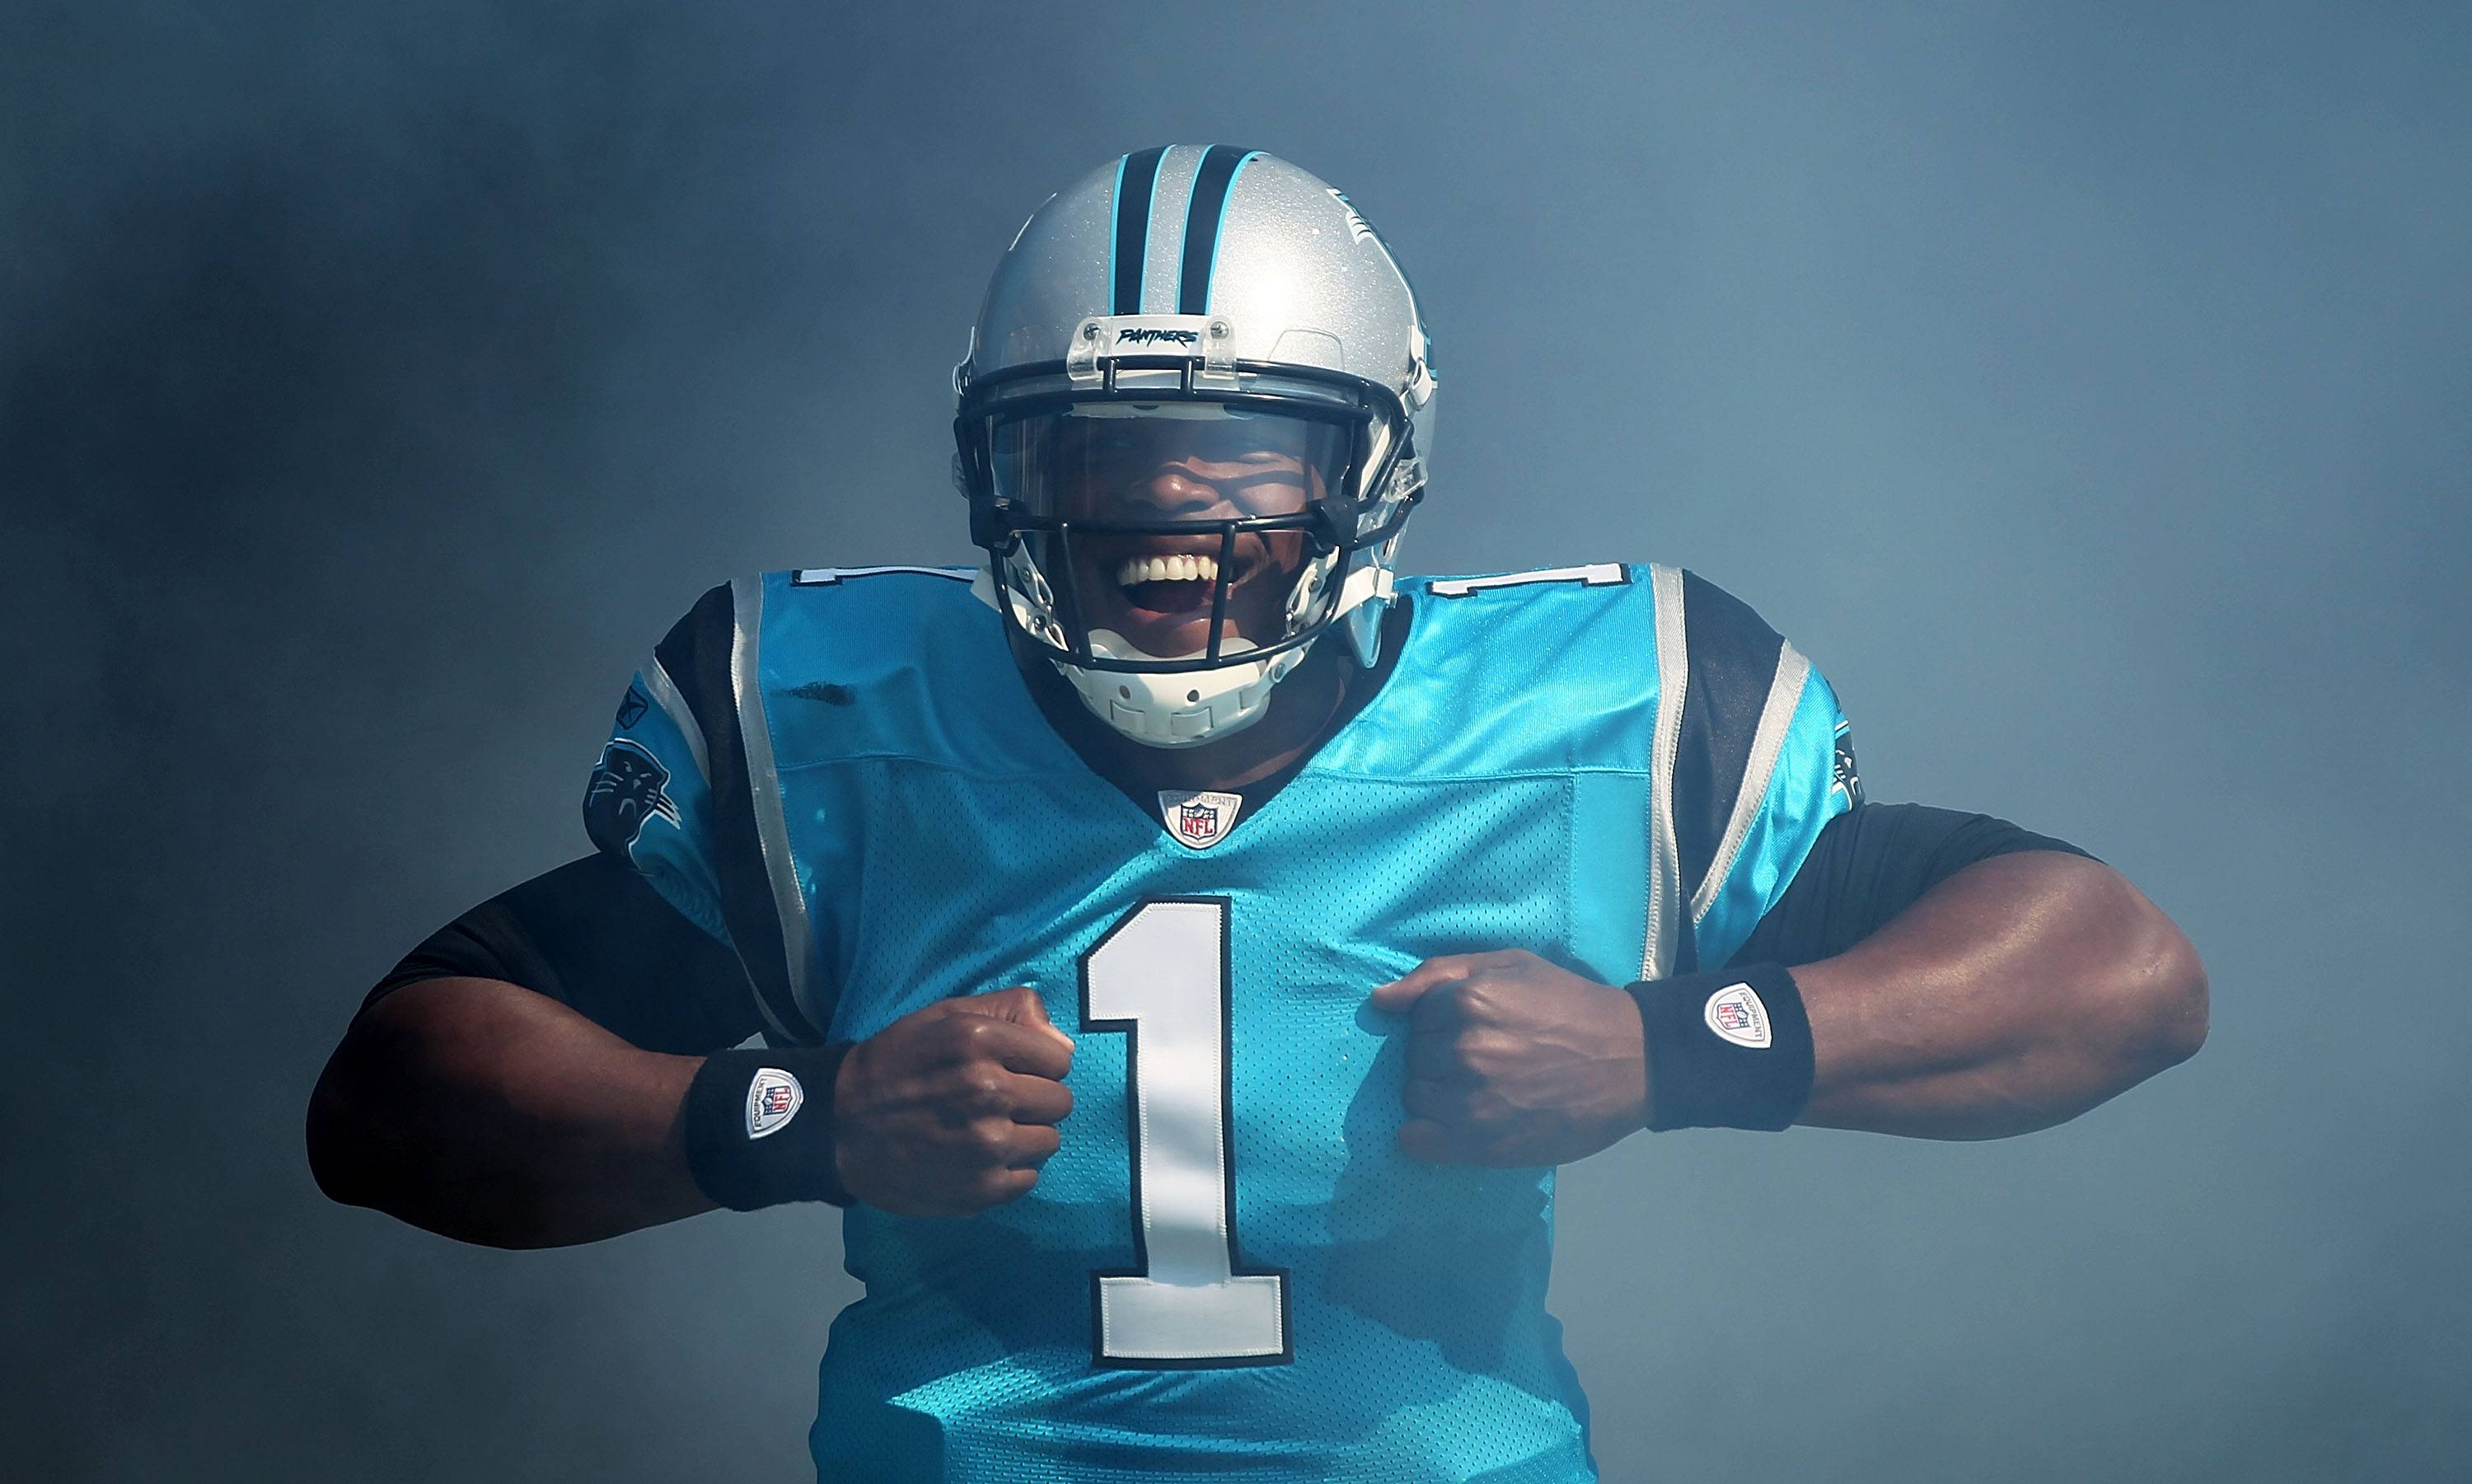 Cam Newton Haunted house Go Karts now game against Cowboys Dallas 3000x1801